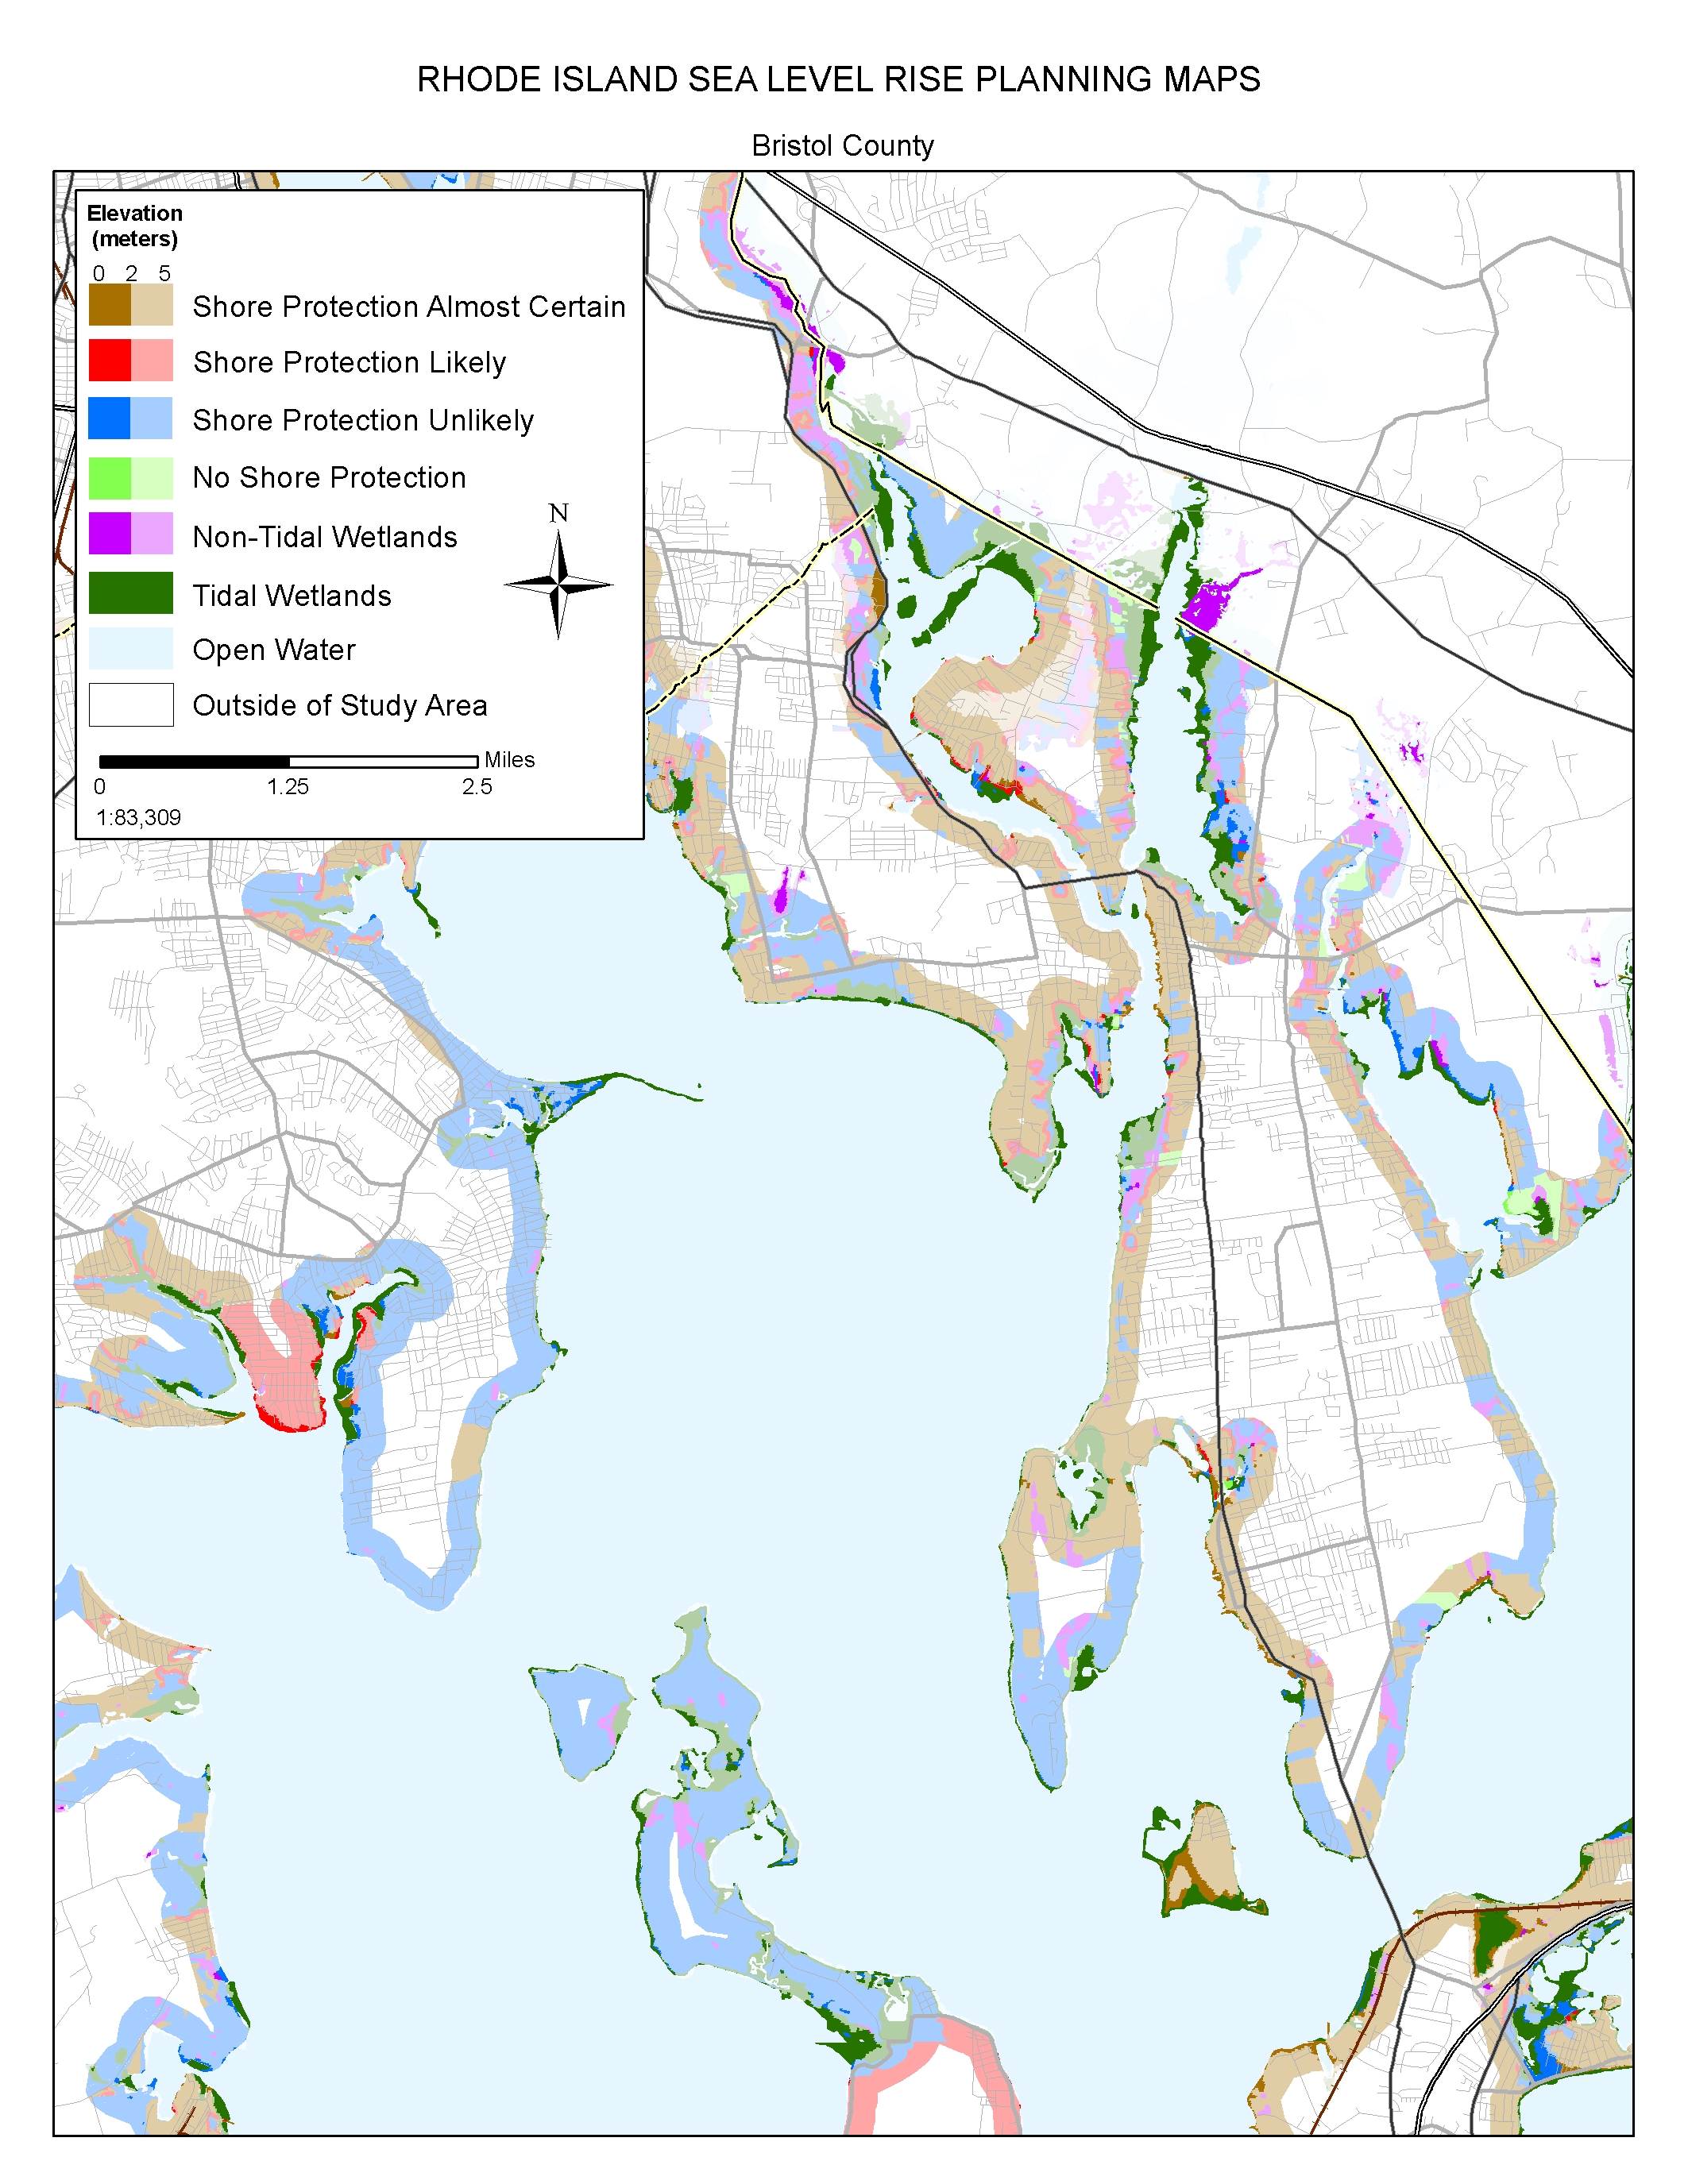 Sea Level Rise Planning Maps Likelihood Of Shore Protection In - Map of ri